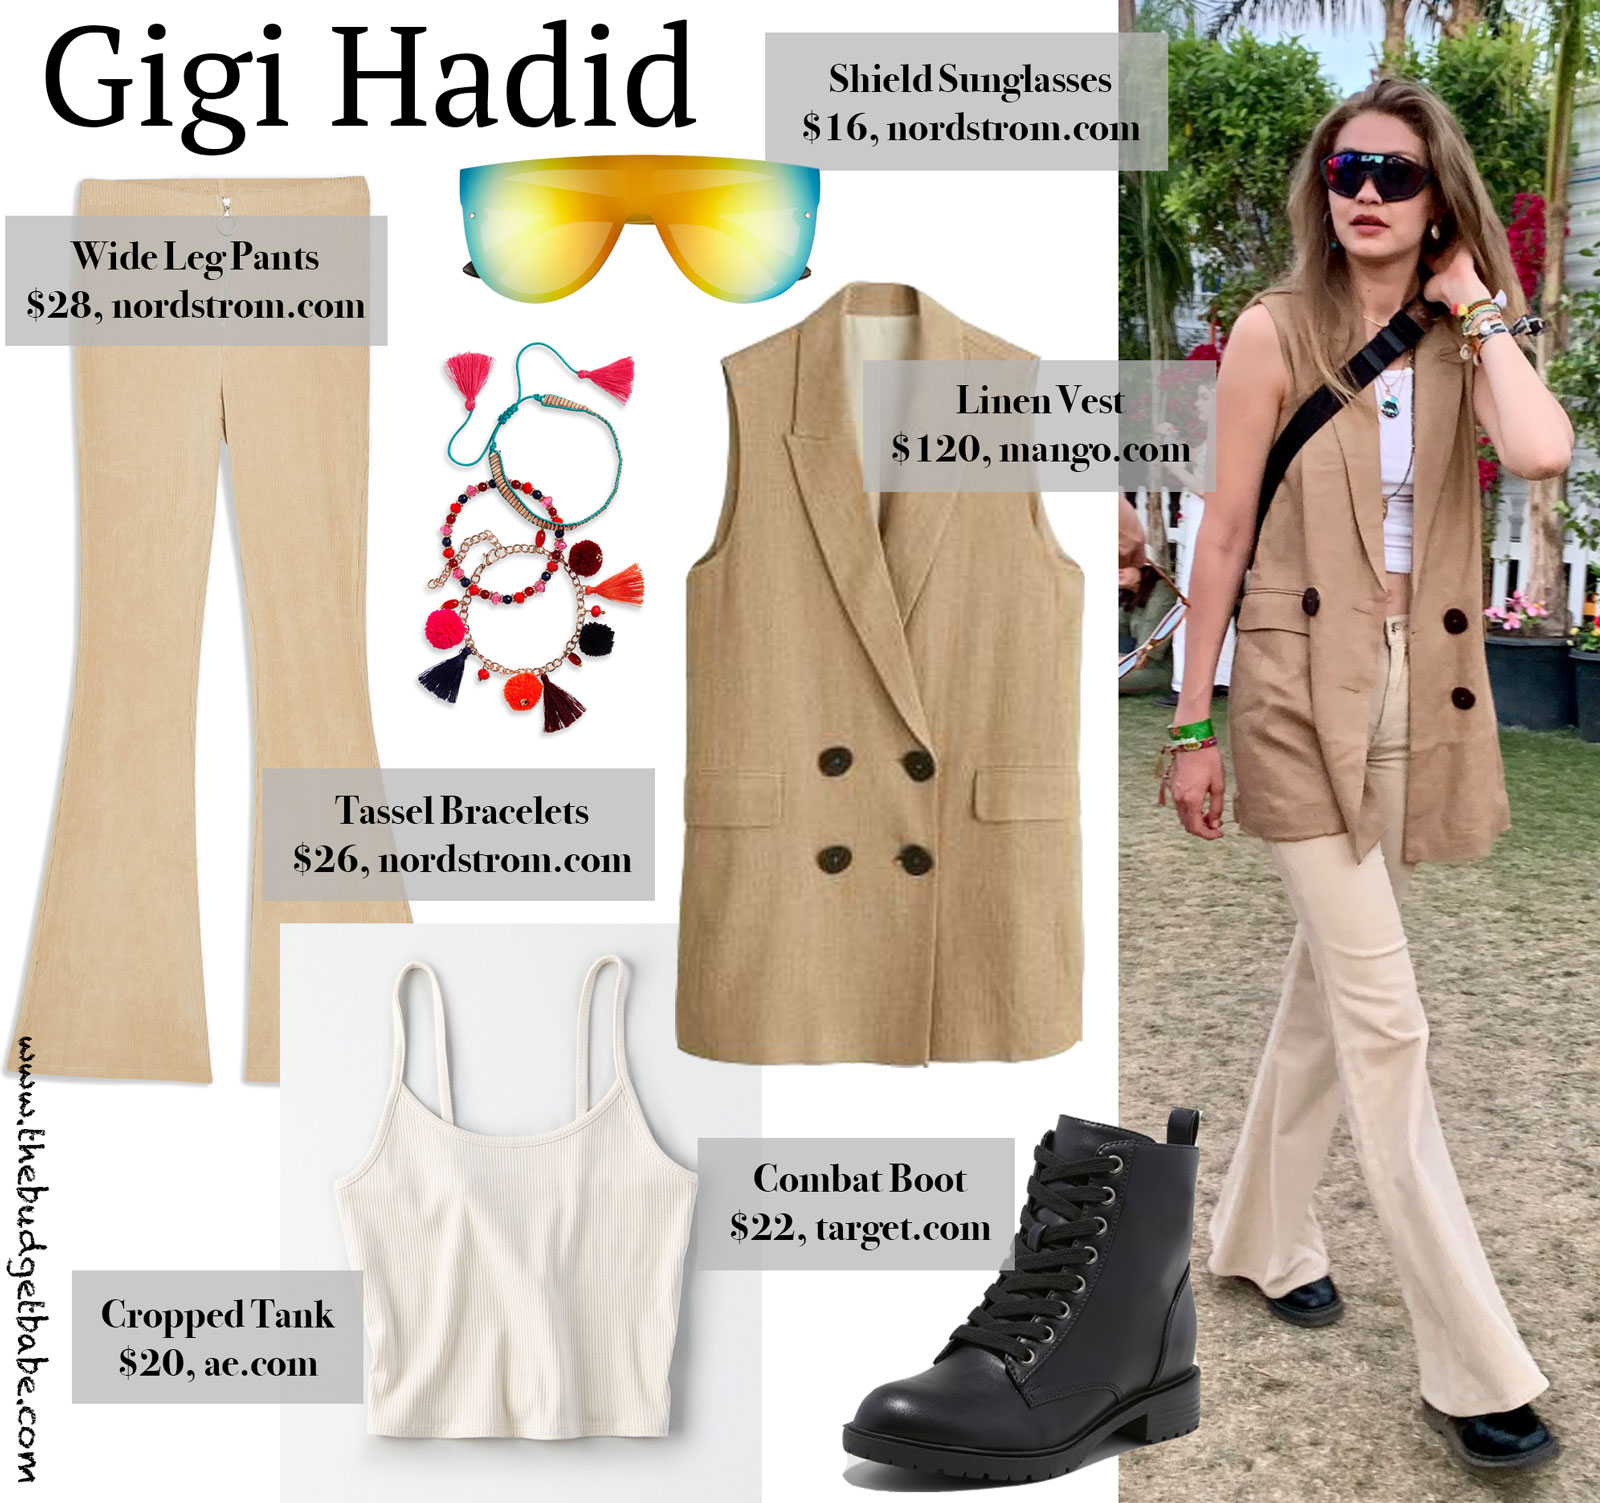 Gigi Hadid Tan Vest and Wide Leg Pants Look for Less